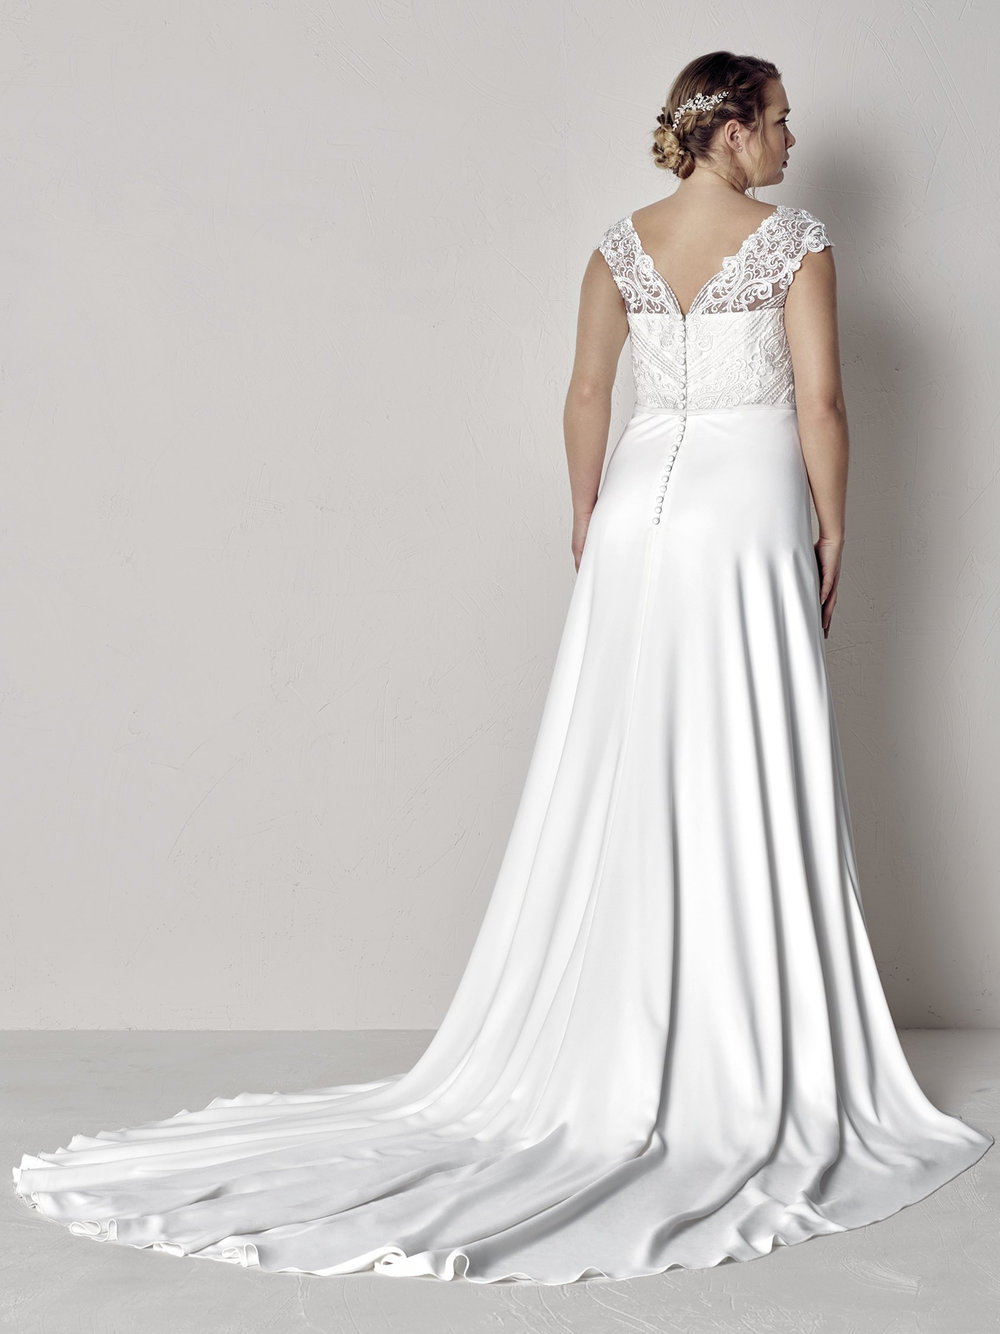 PronoviasBridal-BridesbyYoung-PlusSizeWeddingDress-Eyra-1.jpg